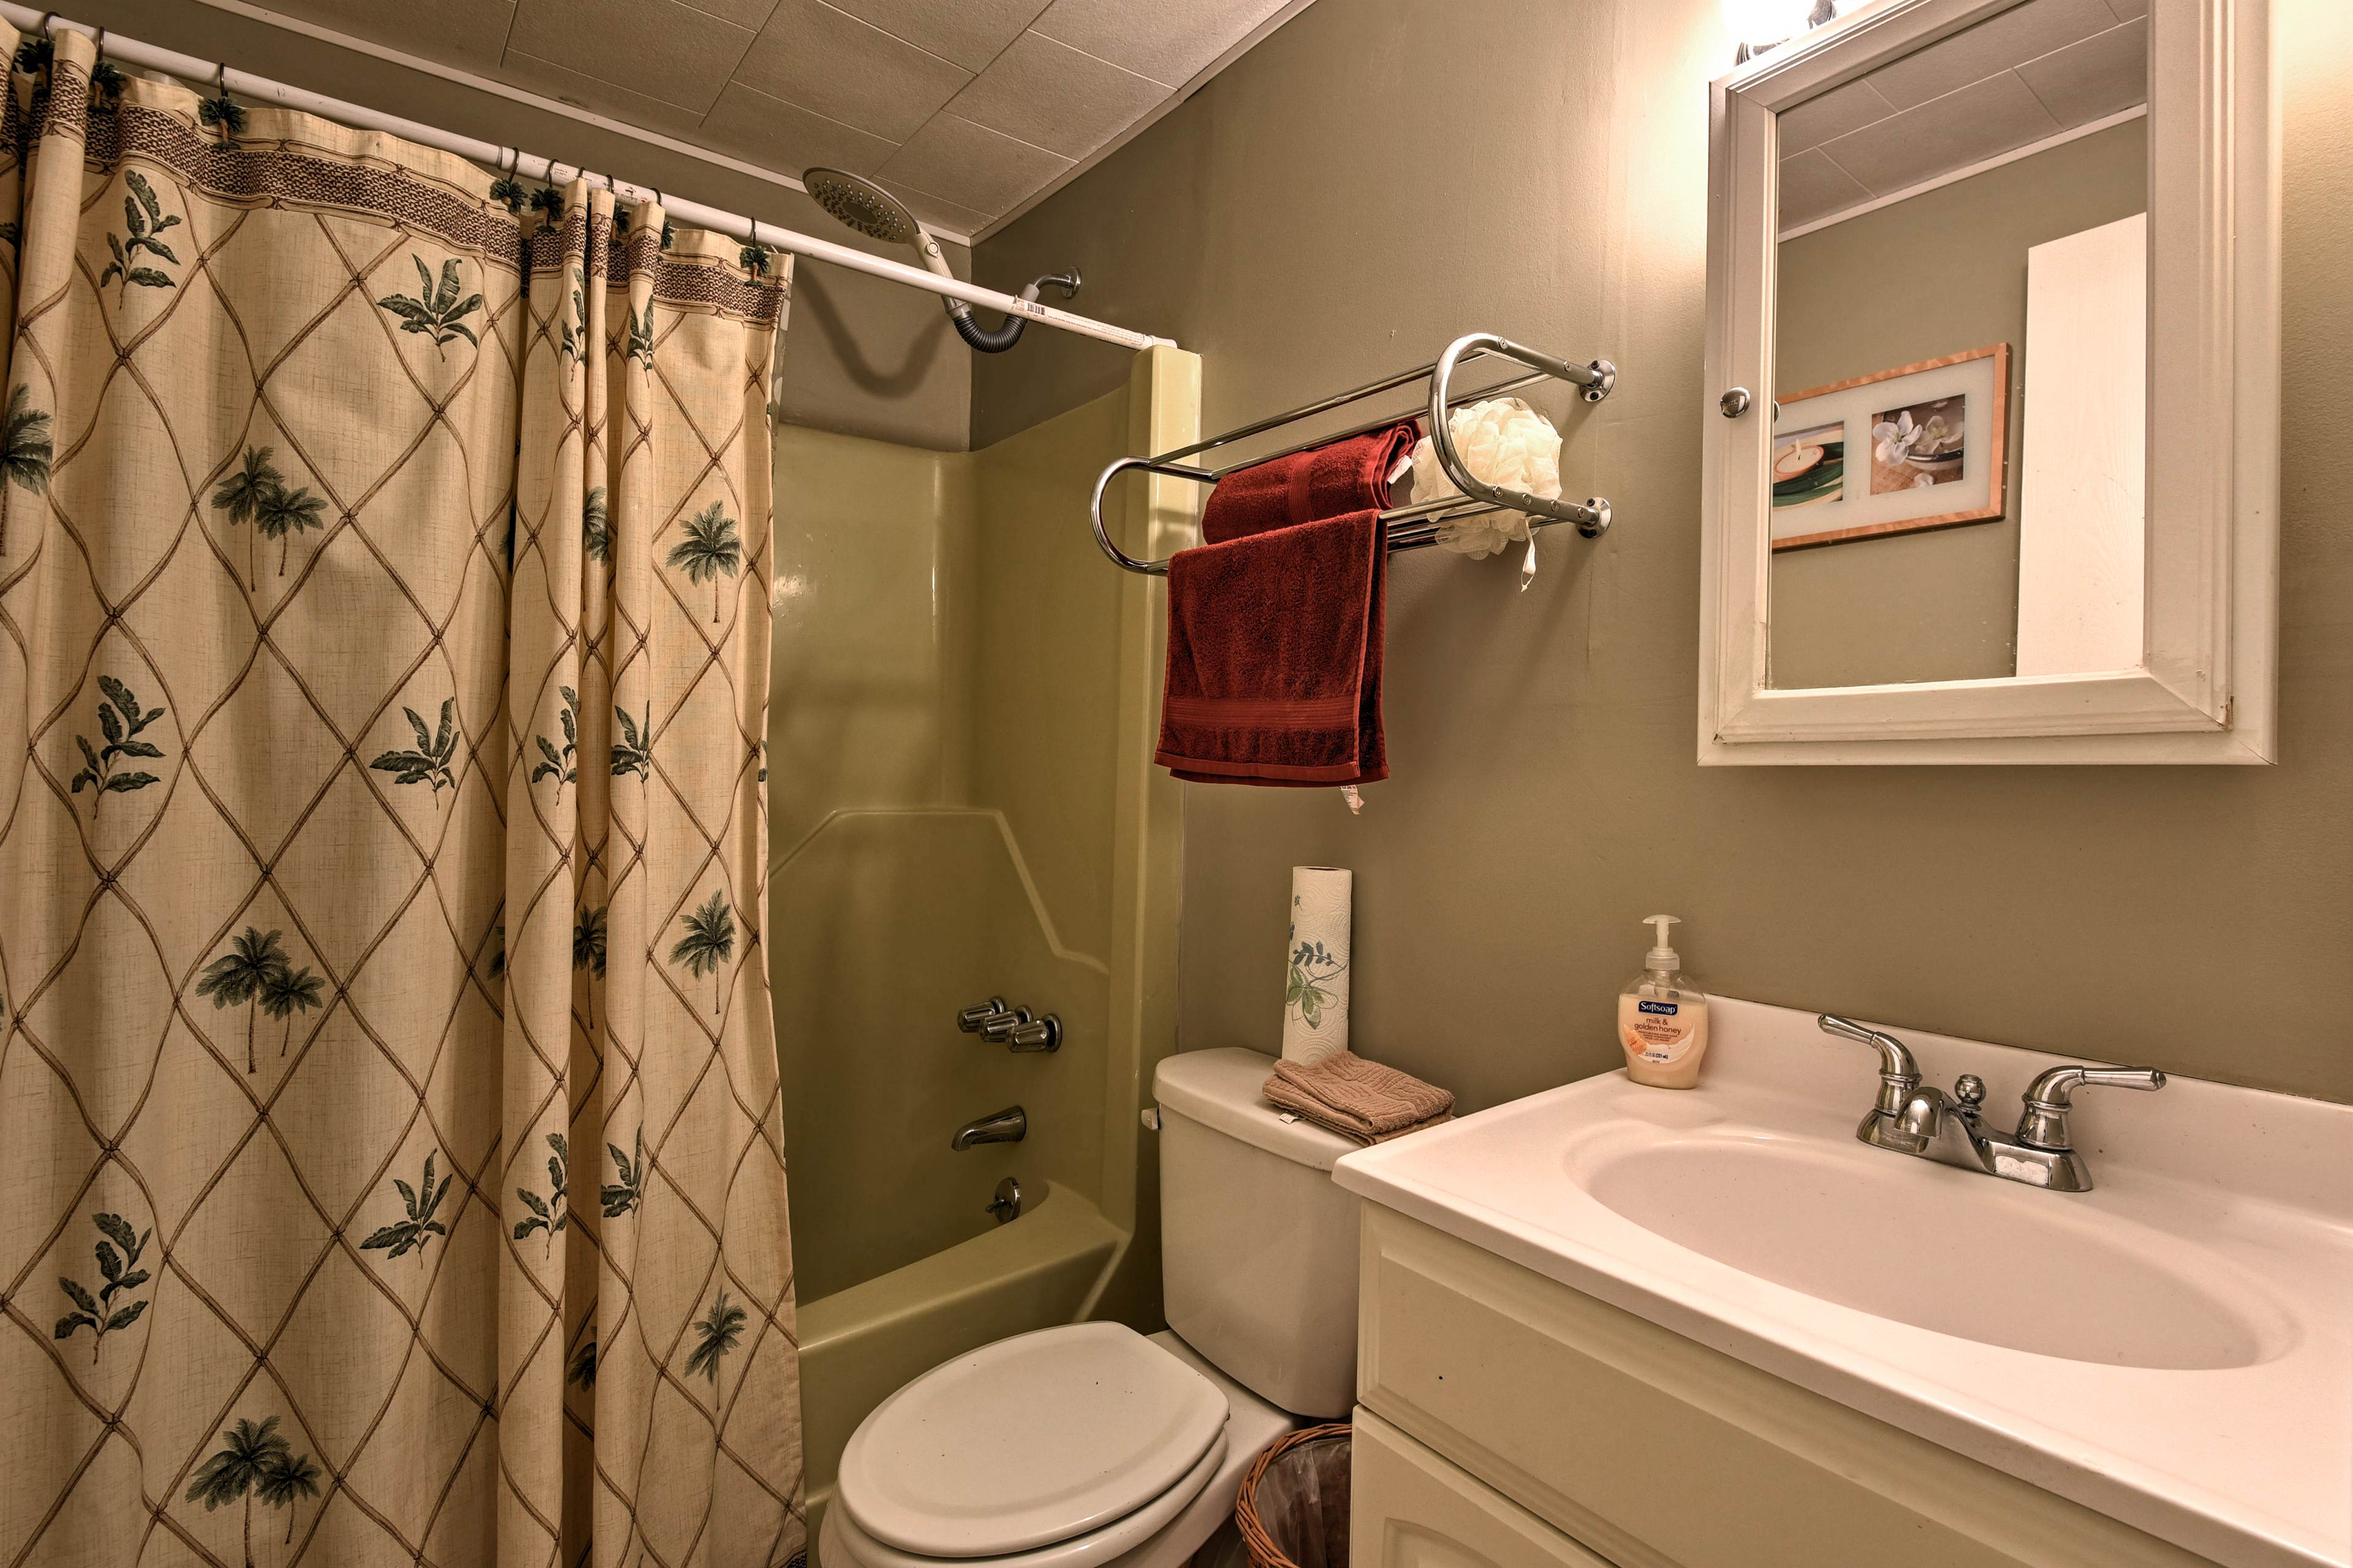 The full bathroom comes stocked with fresh towels.